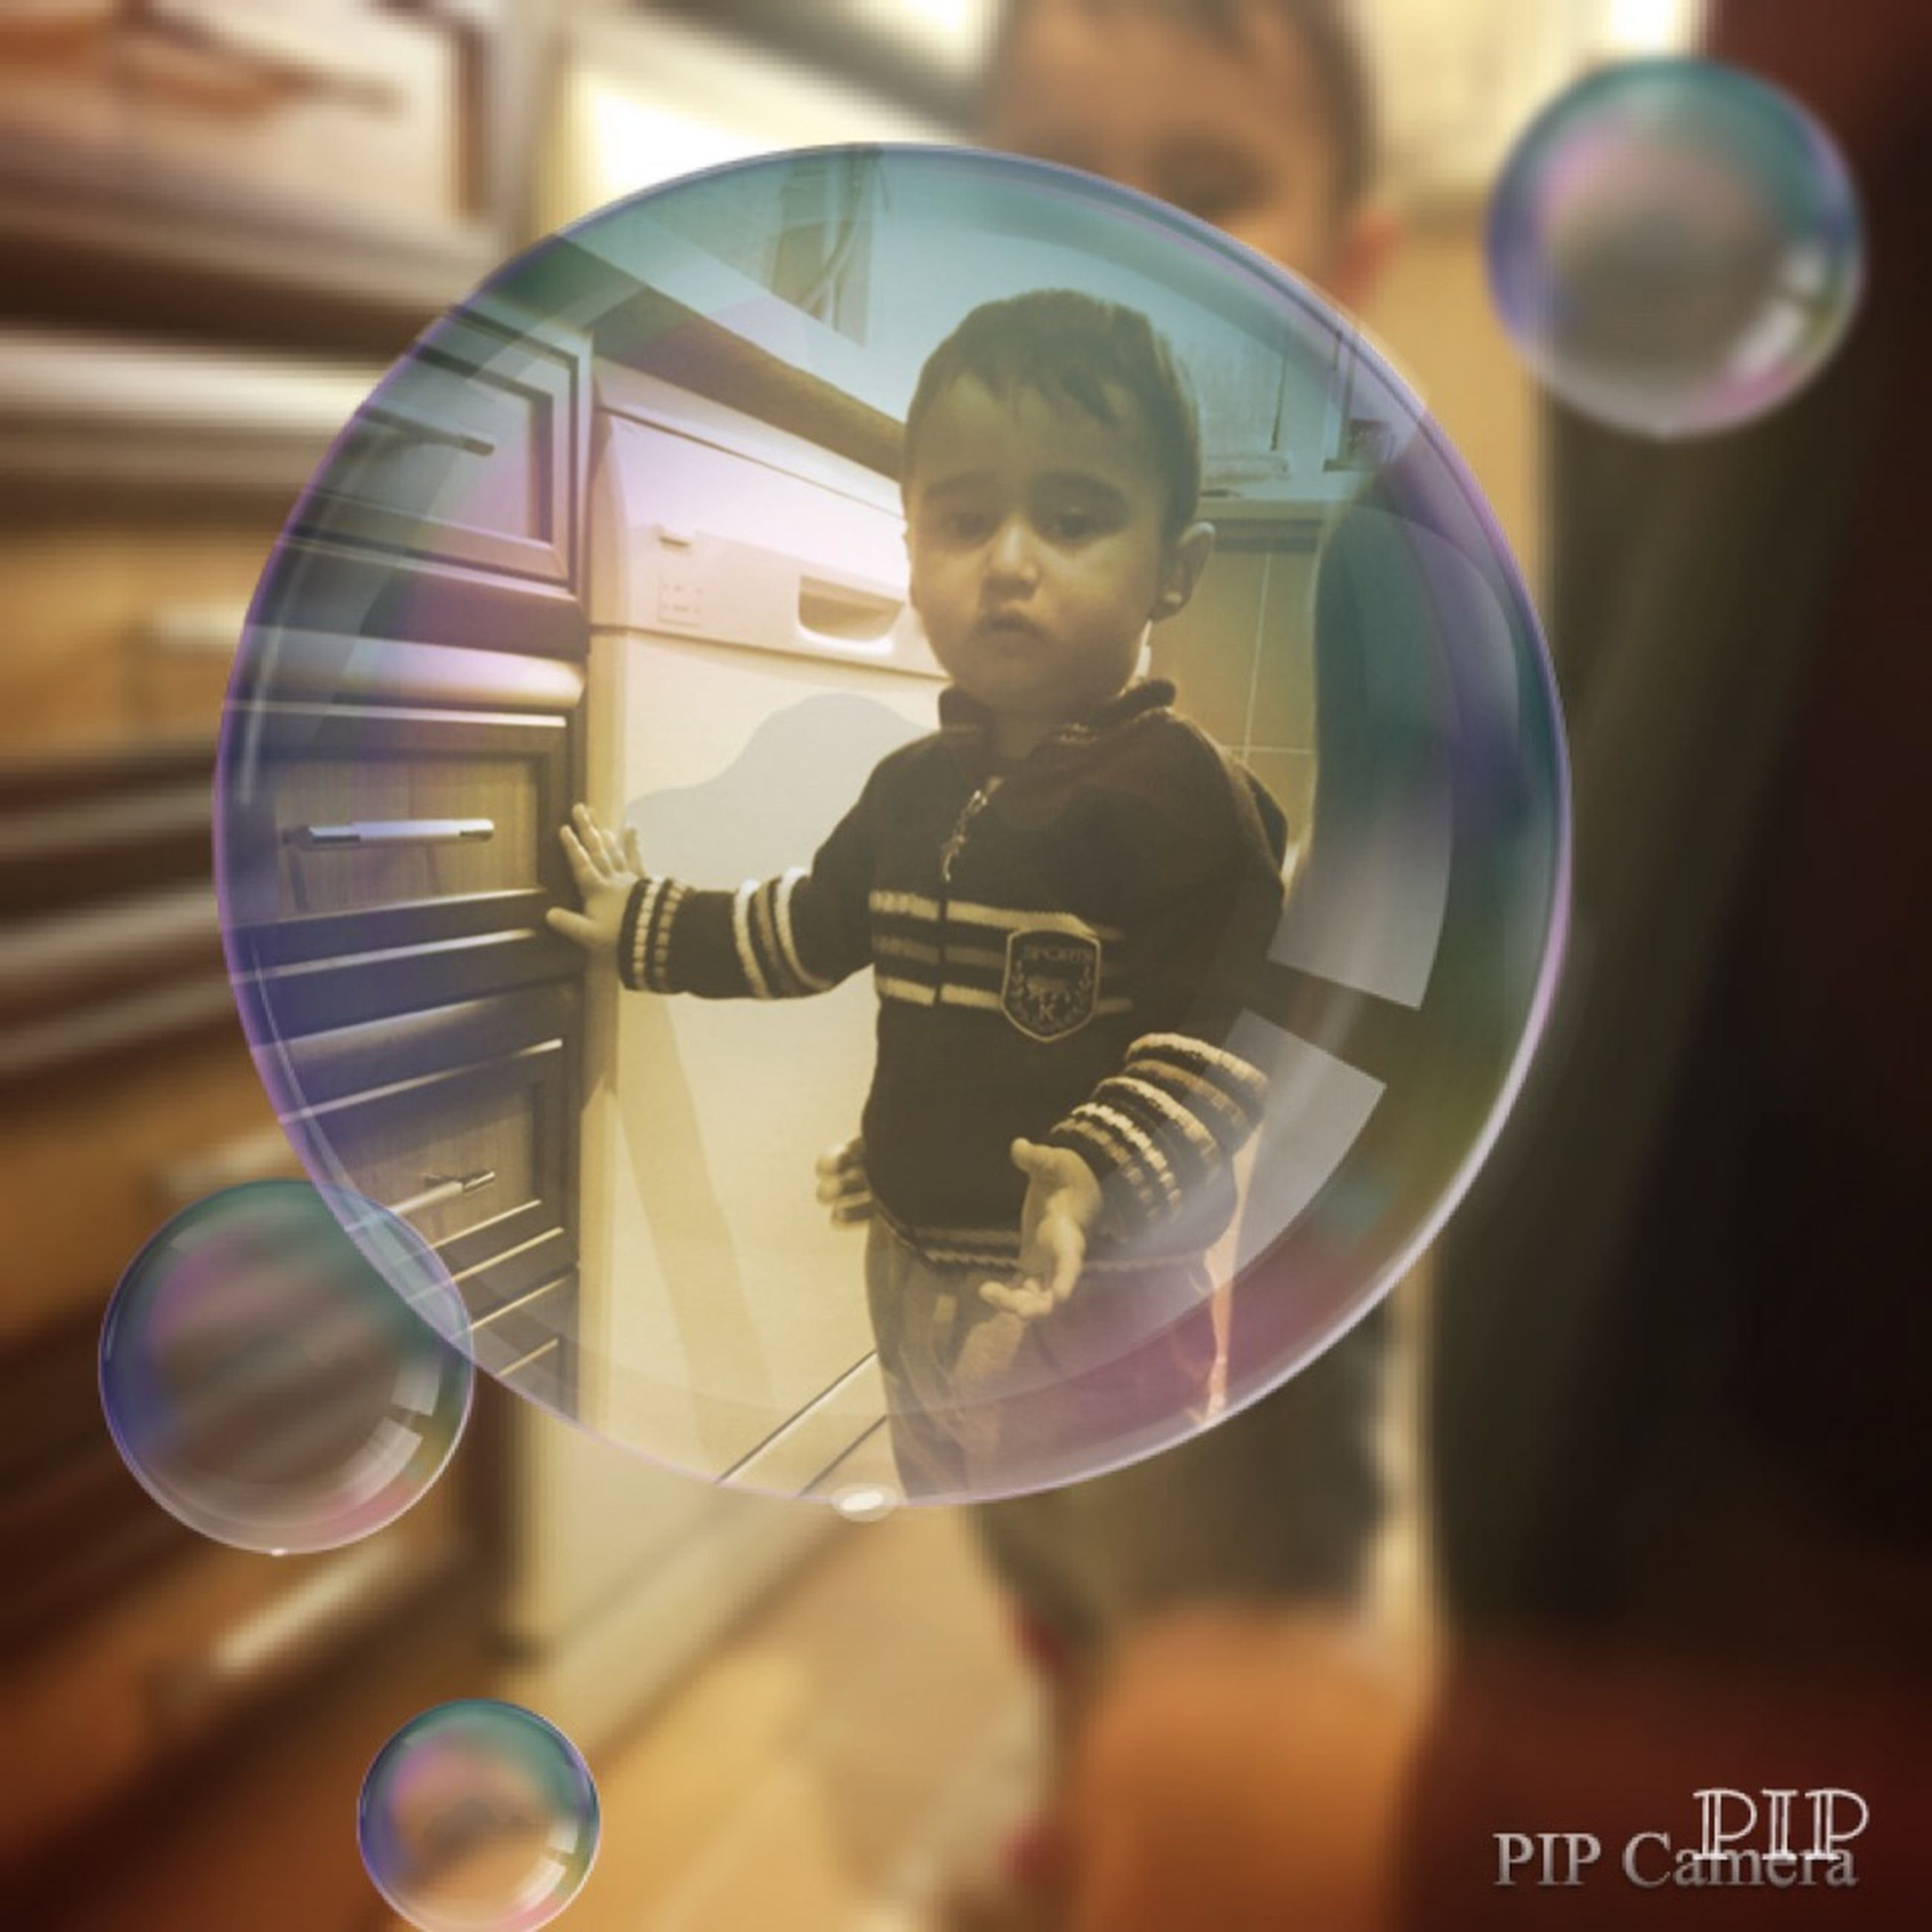 leisure activity, indoors, lifestyles, arts culture and entertainment, playing, focus on foreground, childhood, holding, fun, boys, enjoyment, reflection, men, circle, technology, close-up, transparent, glass - material